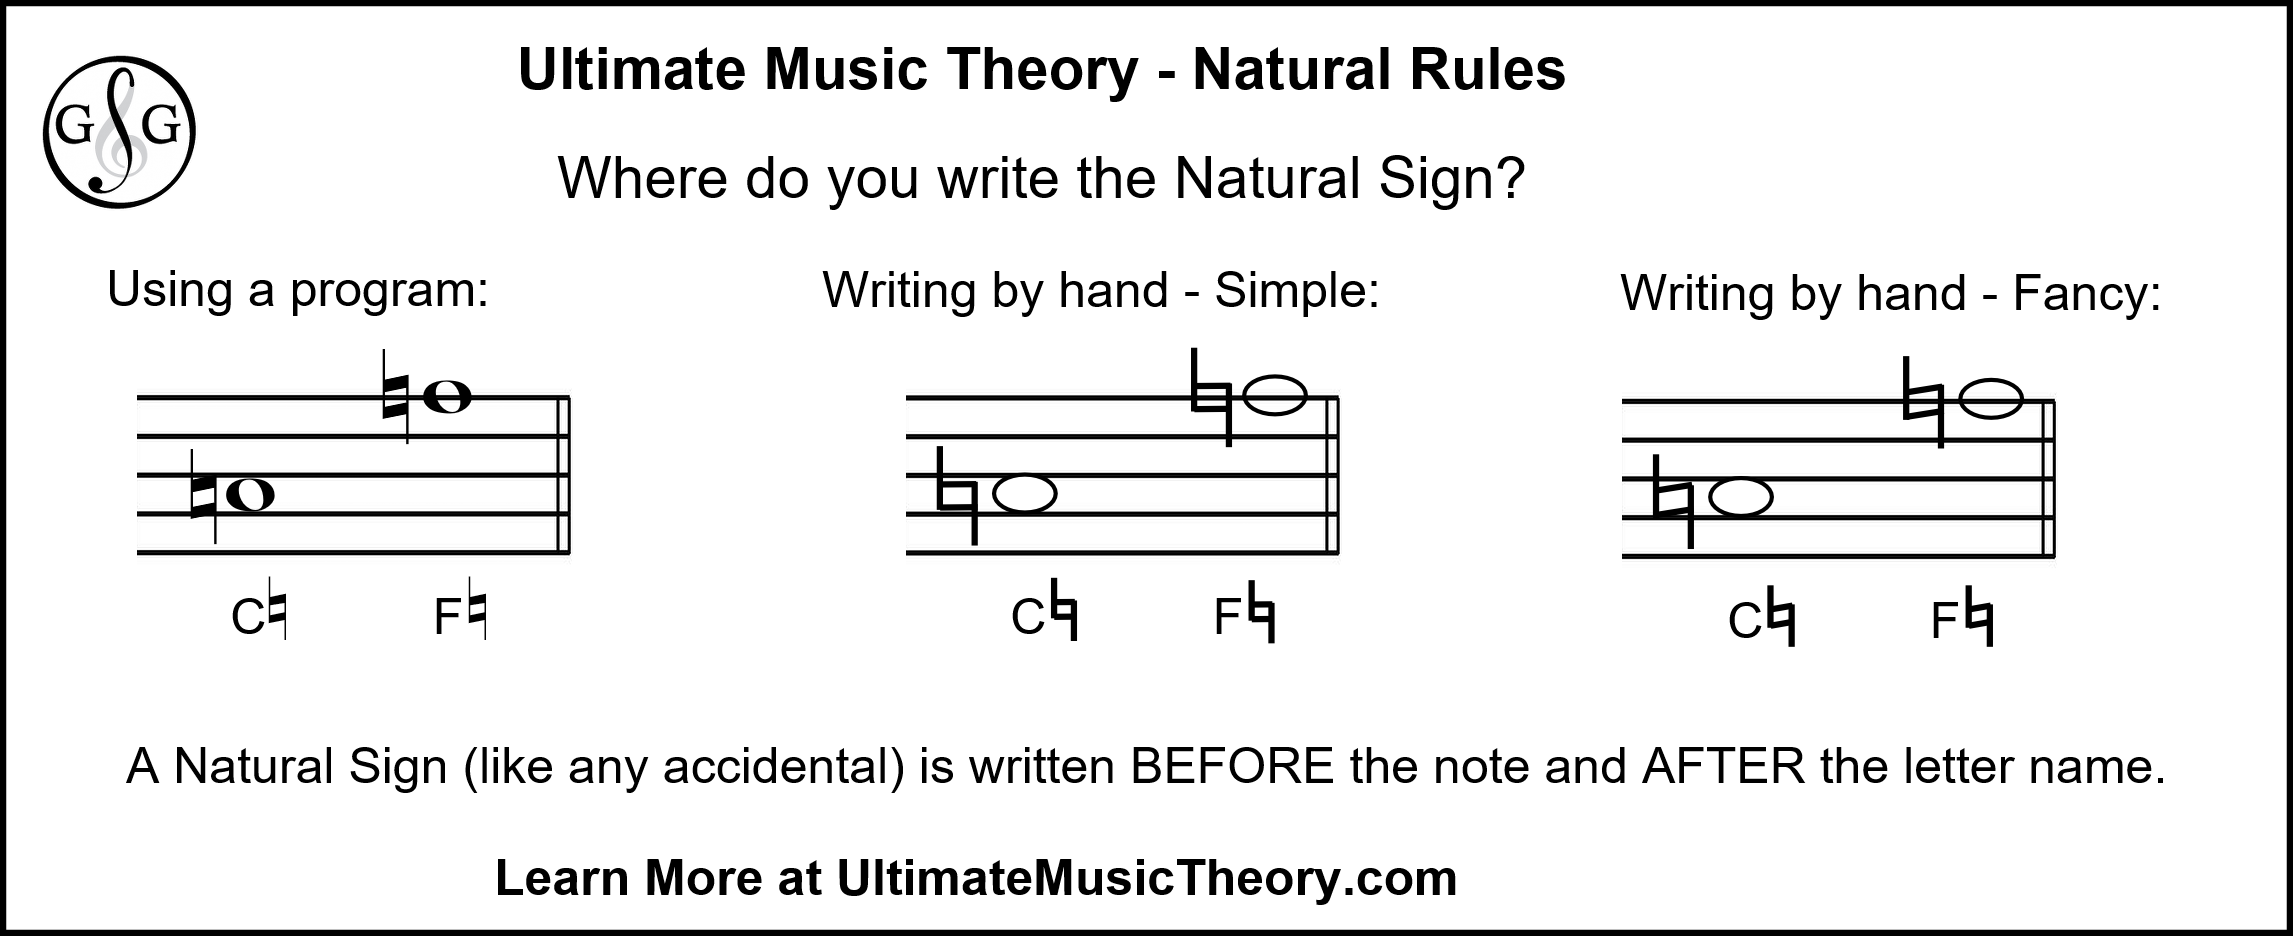 Ultimate Music Theory Natural Rules - Where to Write them